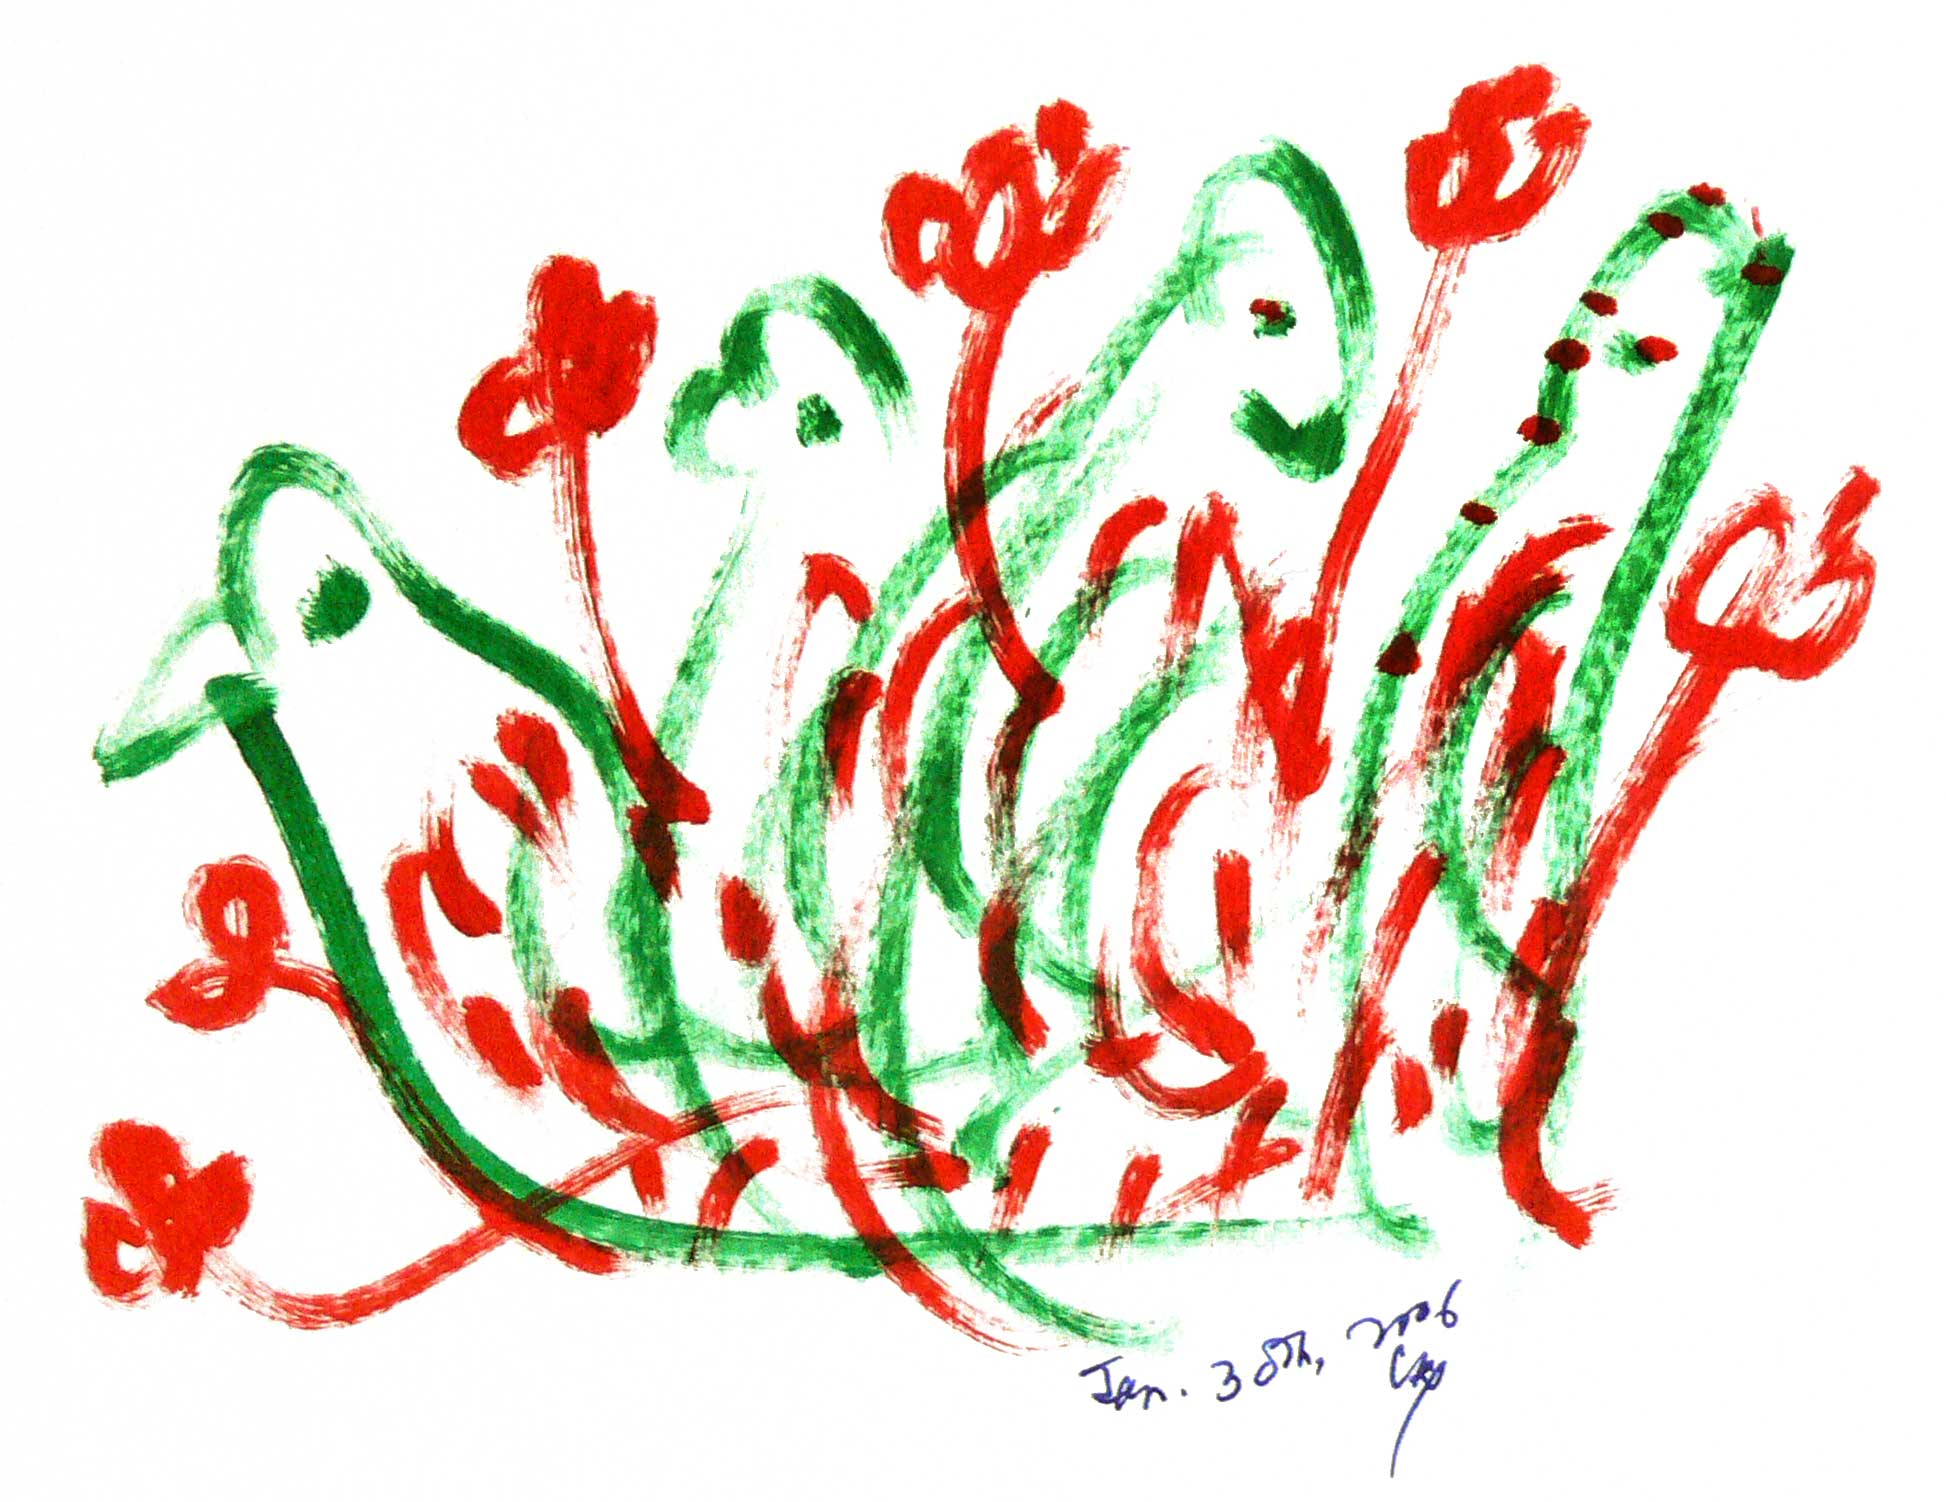 _Bird-Drawing-30-1-2006-7-by-Sri-Chinmoy